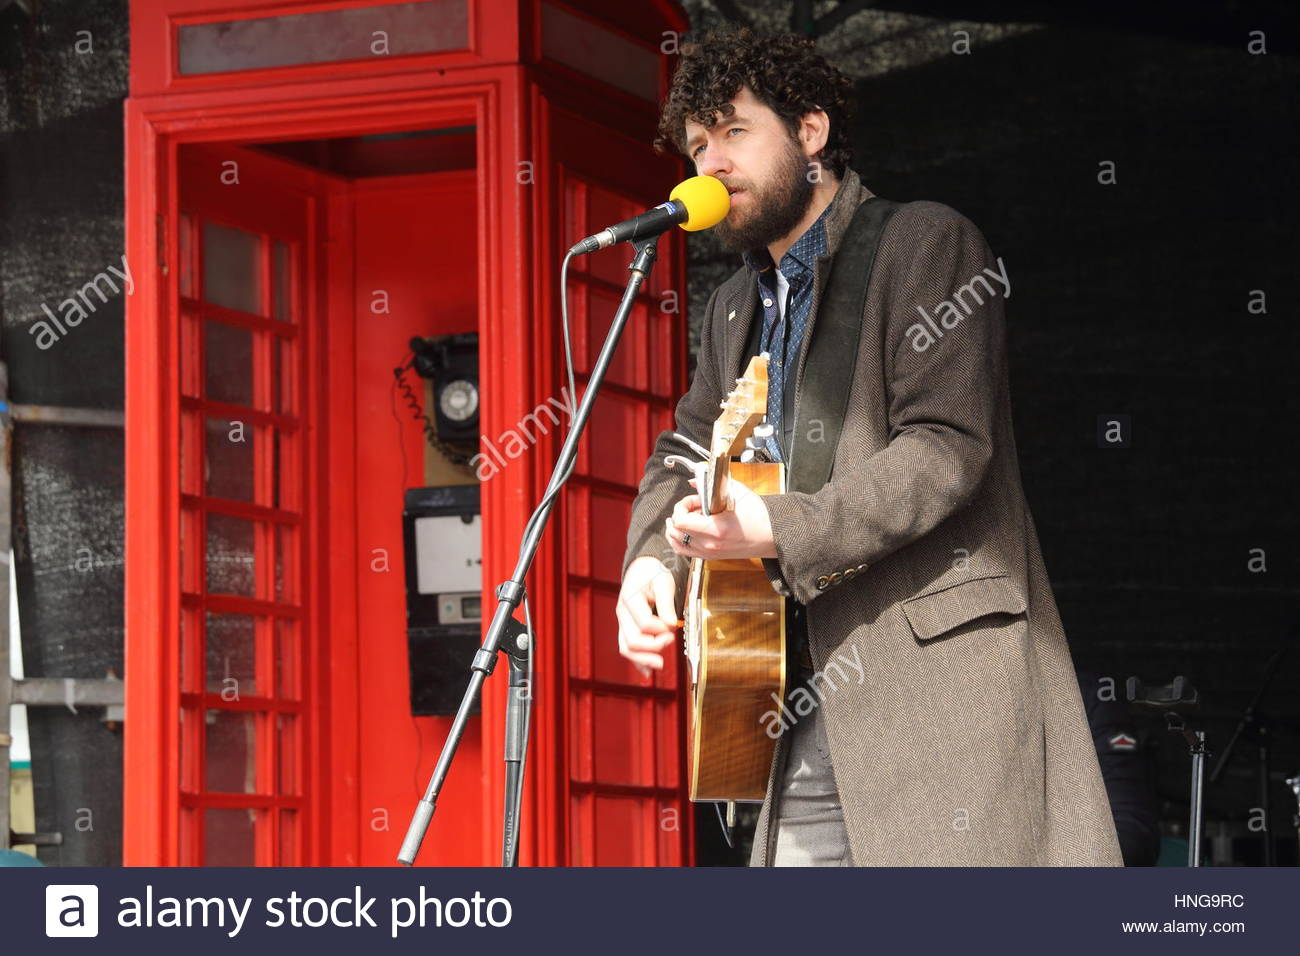 Singer songwriter Declan o Rourke plays for an audience in Dublin on Easter Monday, 2016 Stock Photo